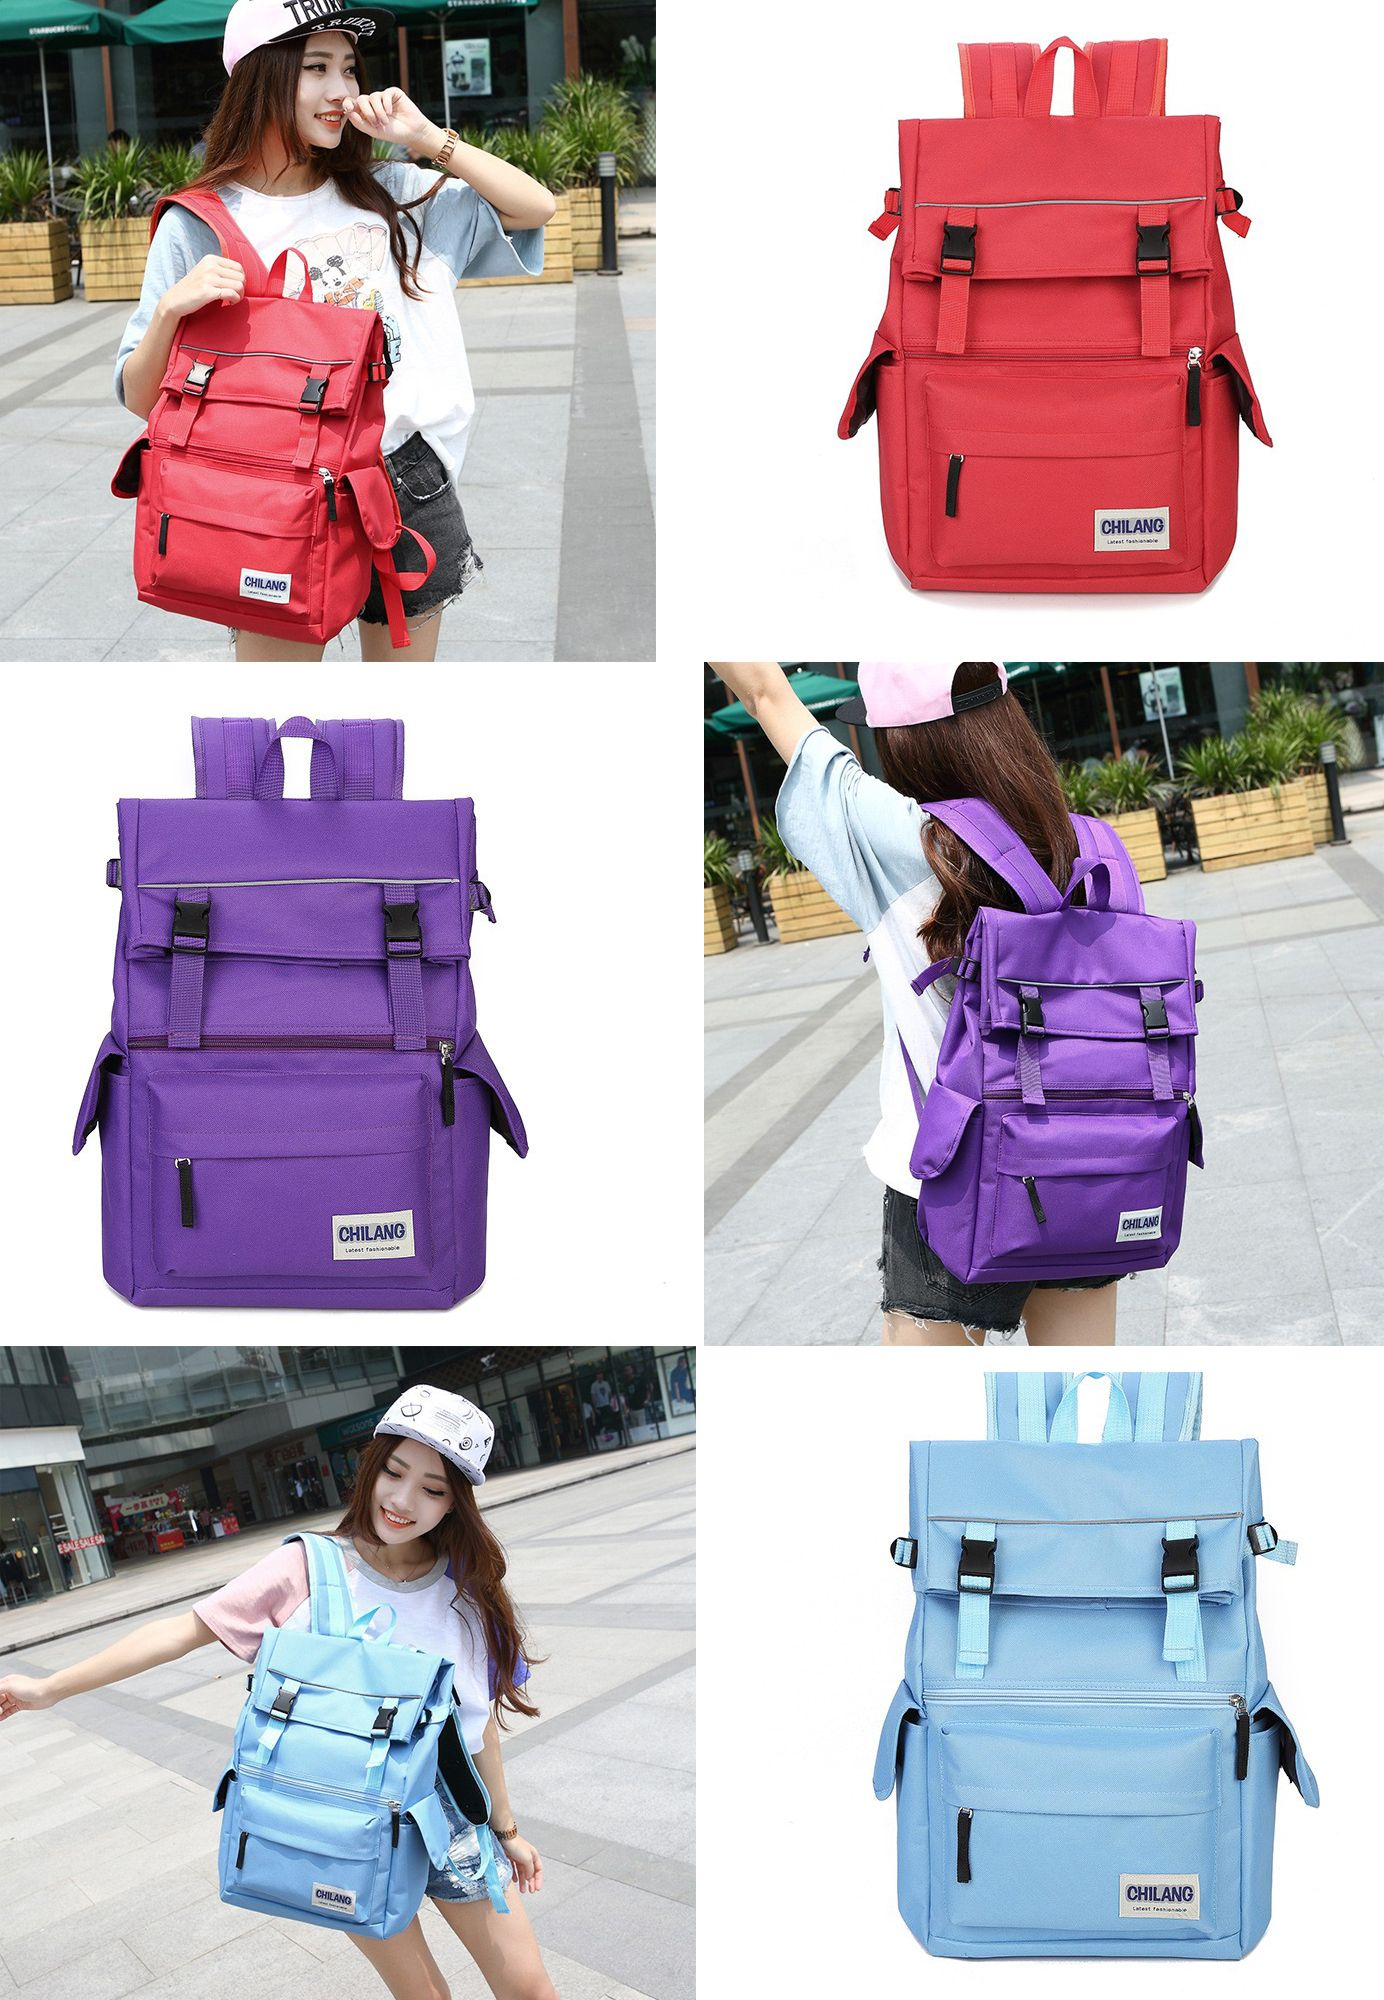 Large Capacity Leisure Nylon Waterproof Laptop Outdoor Backpack School Bag  for Girls backpack laptop women cc6defd294efd